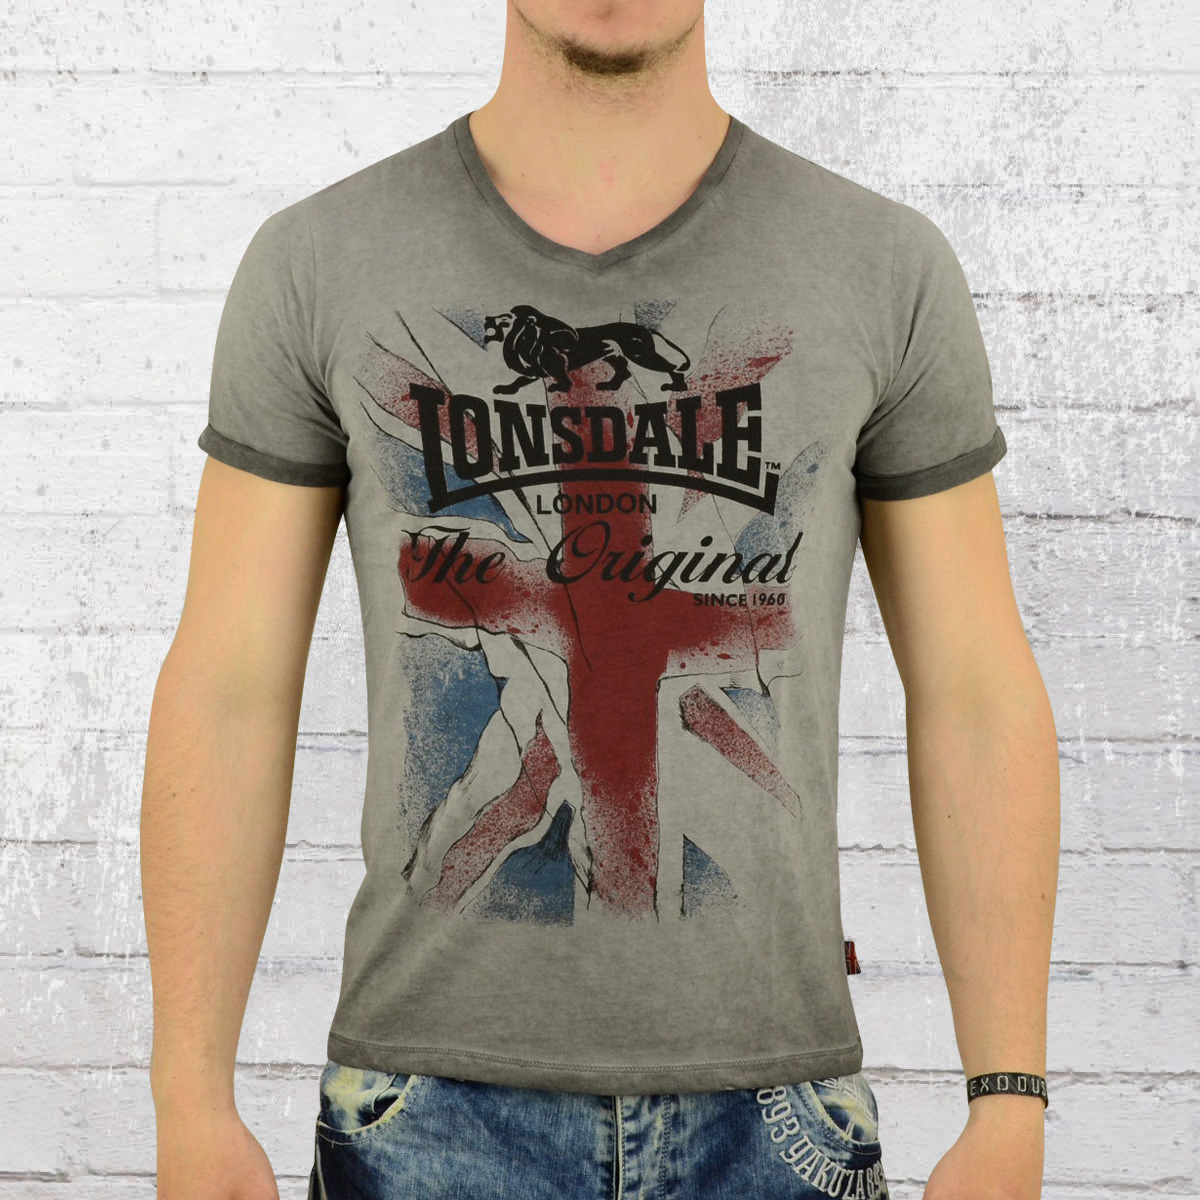 jetzt bestellen lonsdale london herren t shirt chinnor dunkelgrau krasse. Black Bedroom Furniture Sets. Home Design Ideas